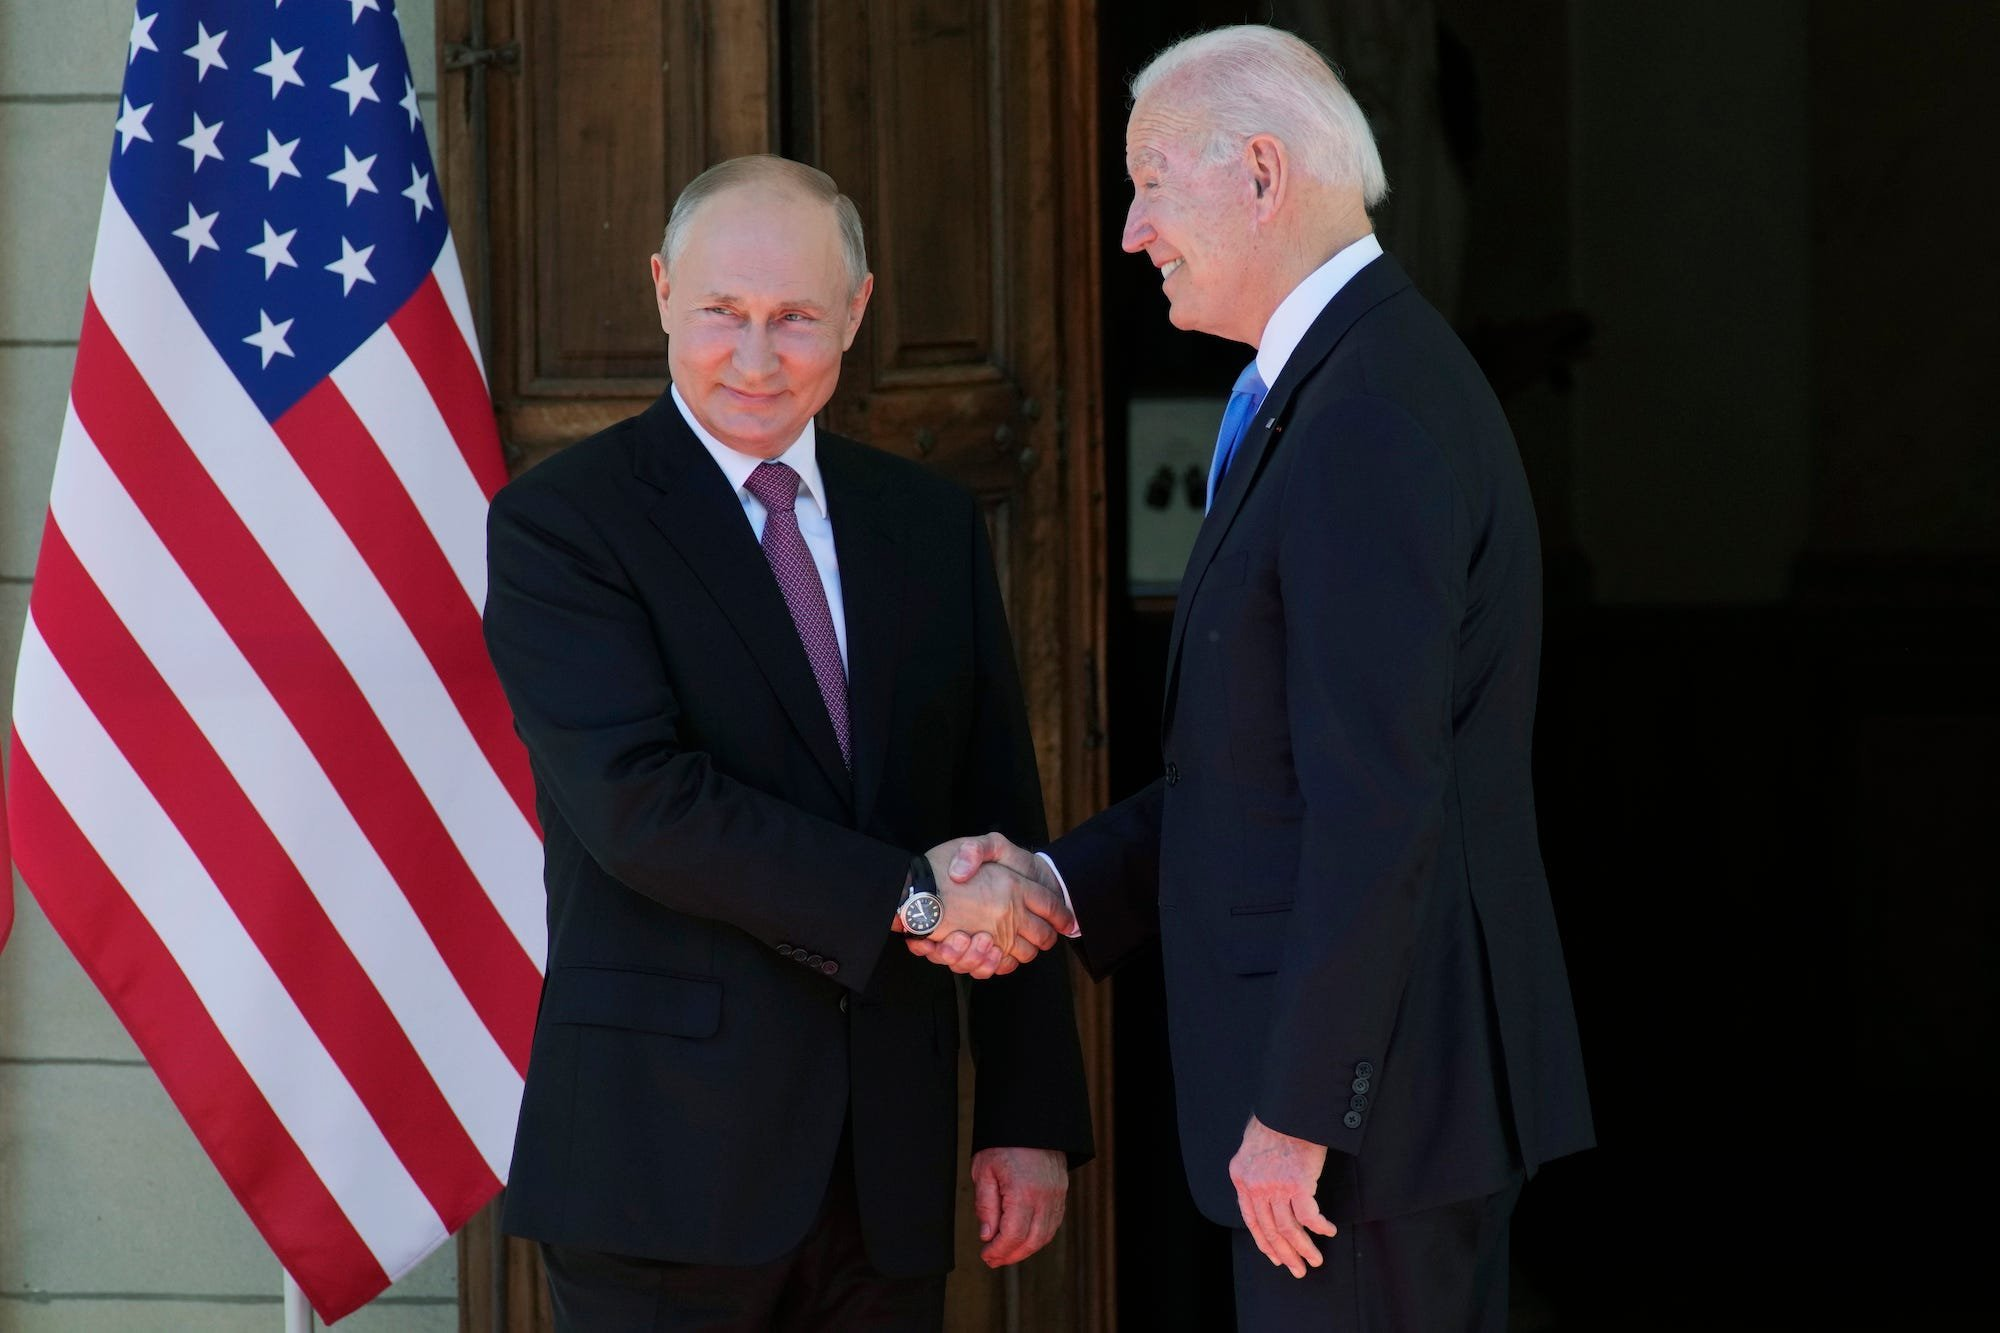 Biden and Putin pose for photos ahead of intense US-Russia summit